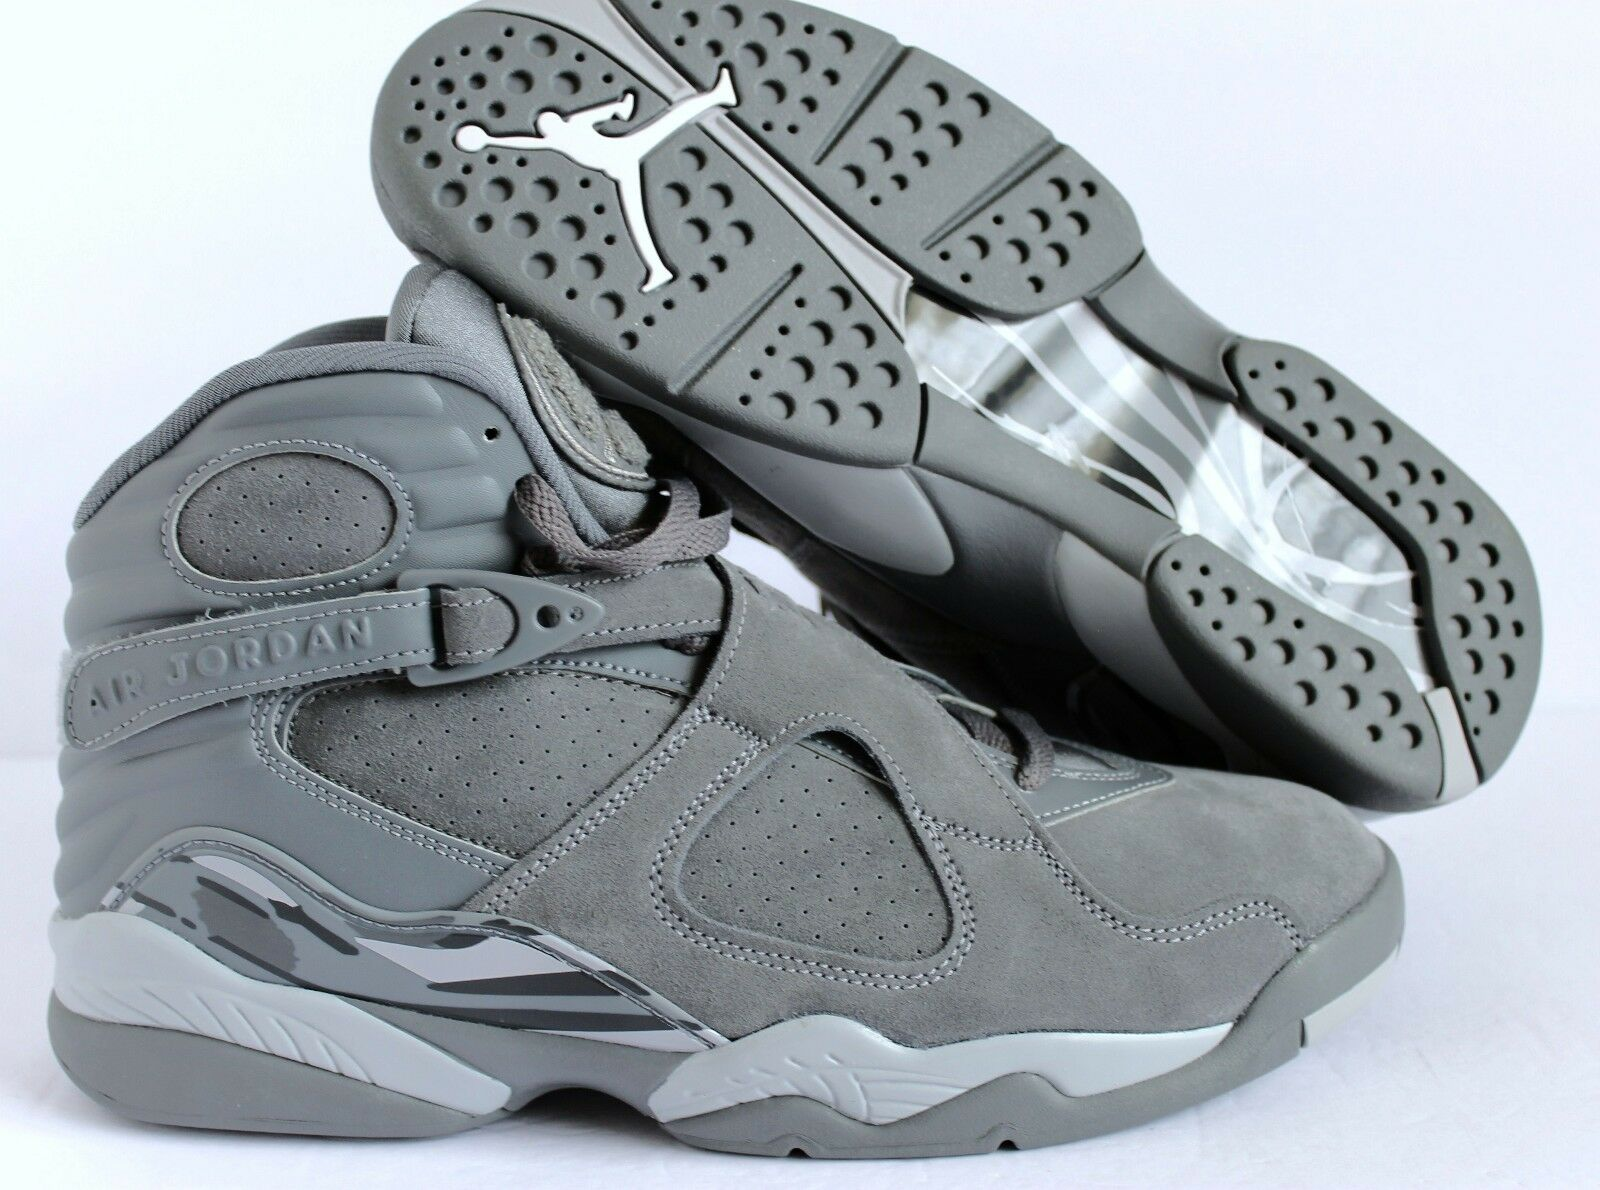 AIR JORDAN 8 RETRO MEN'S BASKETBALL SHOE COOL GREY-WOLF GREY 10 [305381-014]